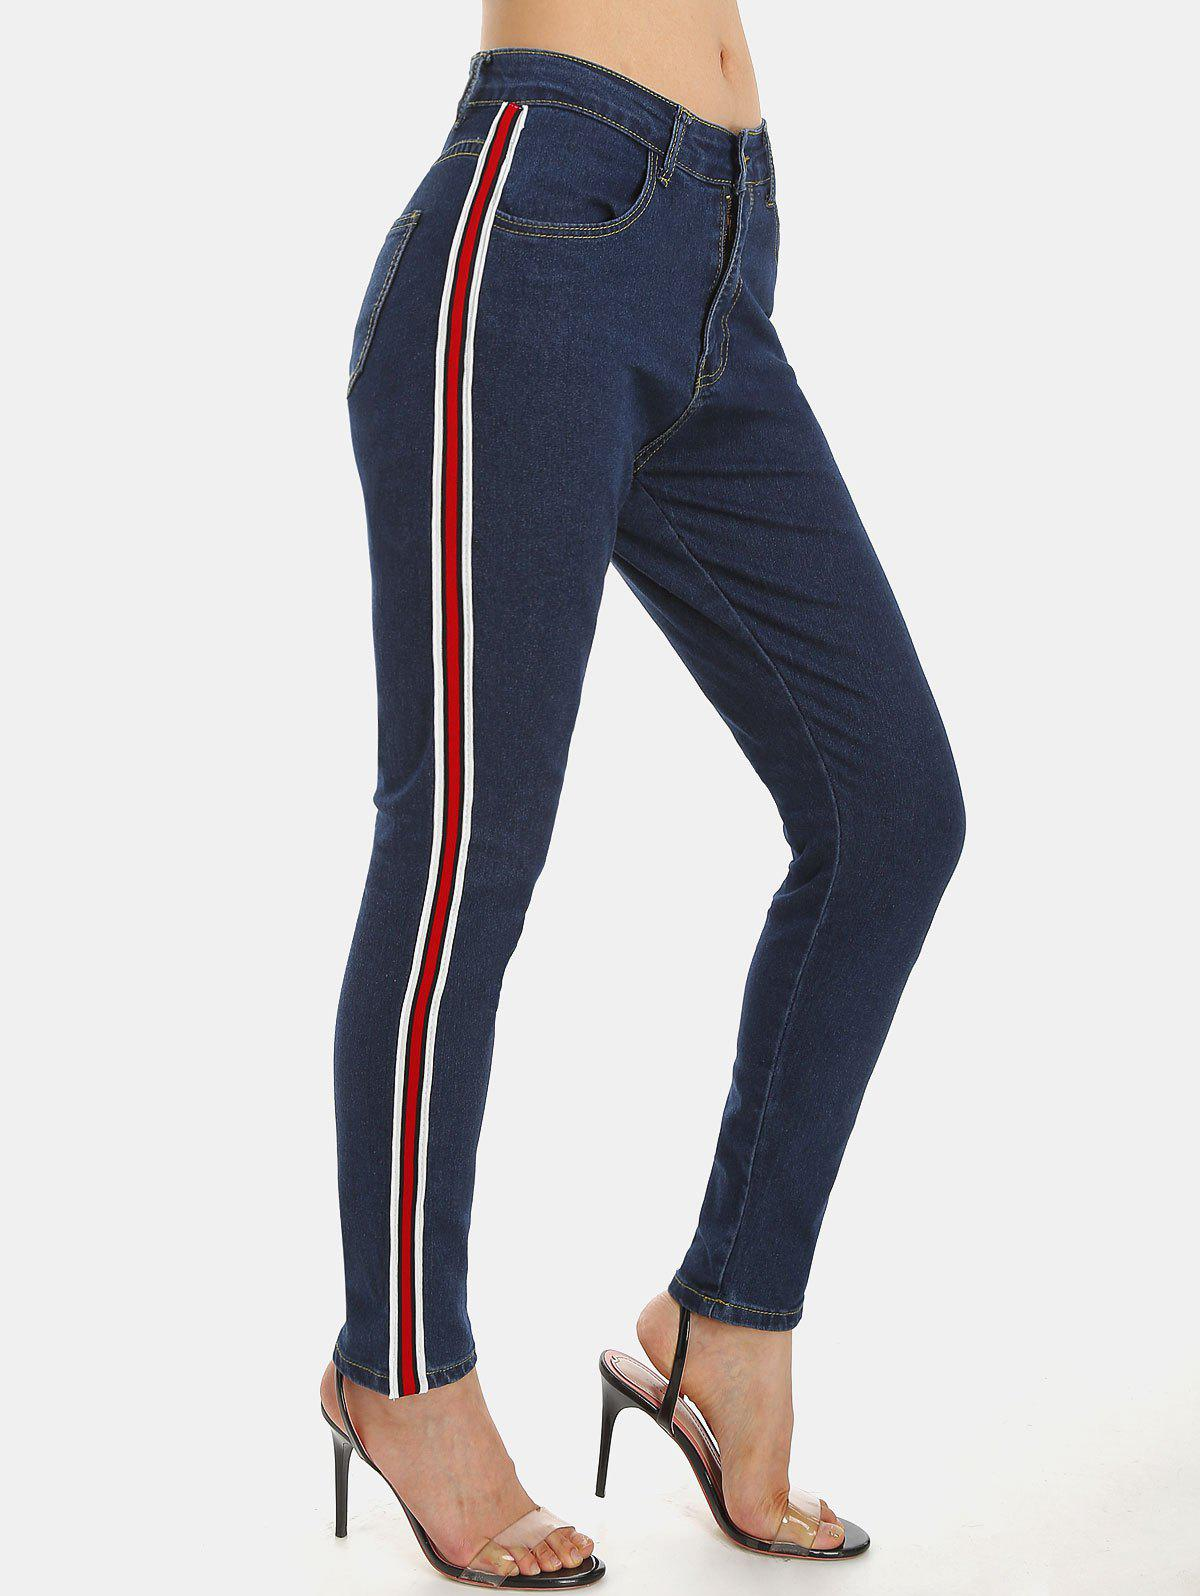 Striped Side Zipper Fly Pocket Jeans - DENIM DARK BLUE L